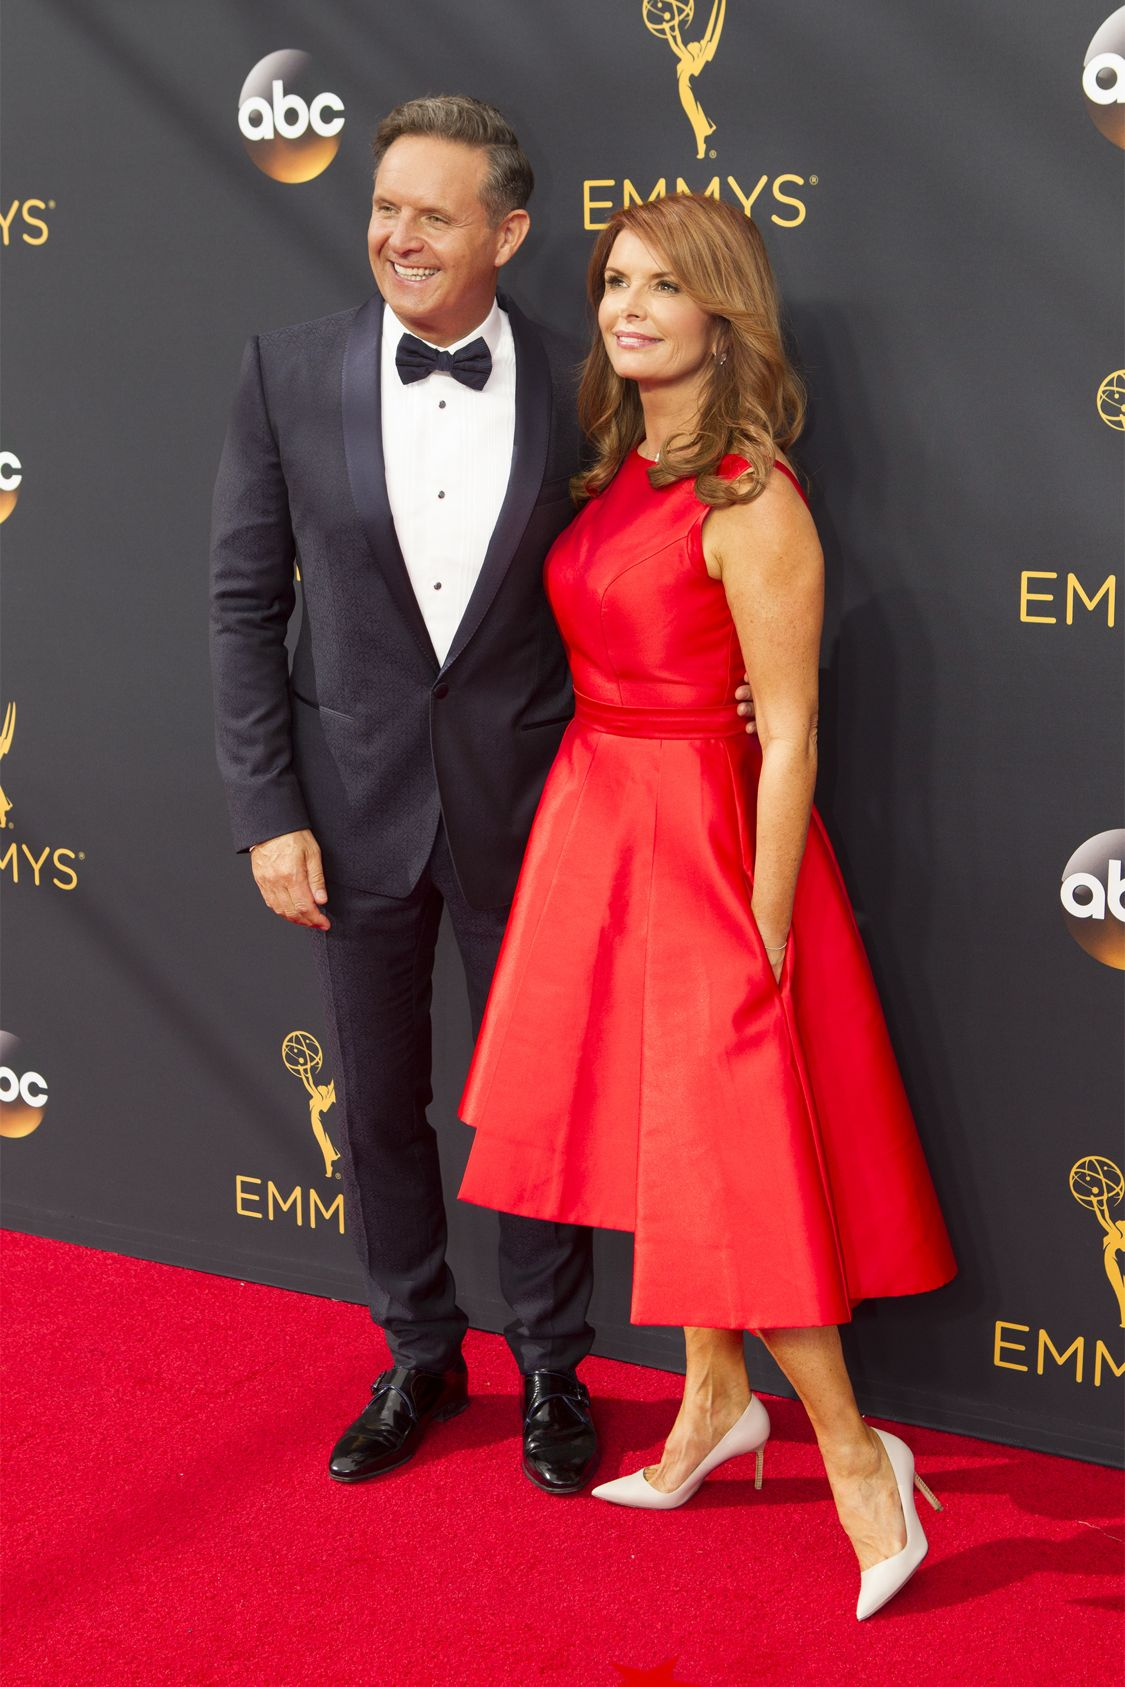 """THE 68TH EMMY(r) AWARDS - """"The 68th Emmy Awards"""" broadcasts live from The Microsoft Theater in Los Angeles, Sunday, September 18 (7:00-11:00 p.m. EDT/4:00-8:00 p.m. PDT), on ABC and is hosted by Jimmy Kimmel. (ABC/Rick Rowell) ROMA DOWNEY"""